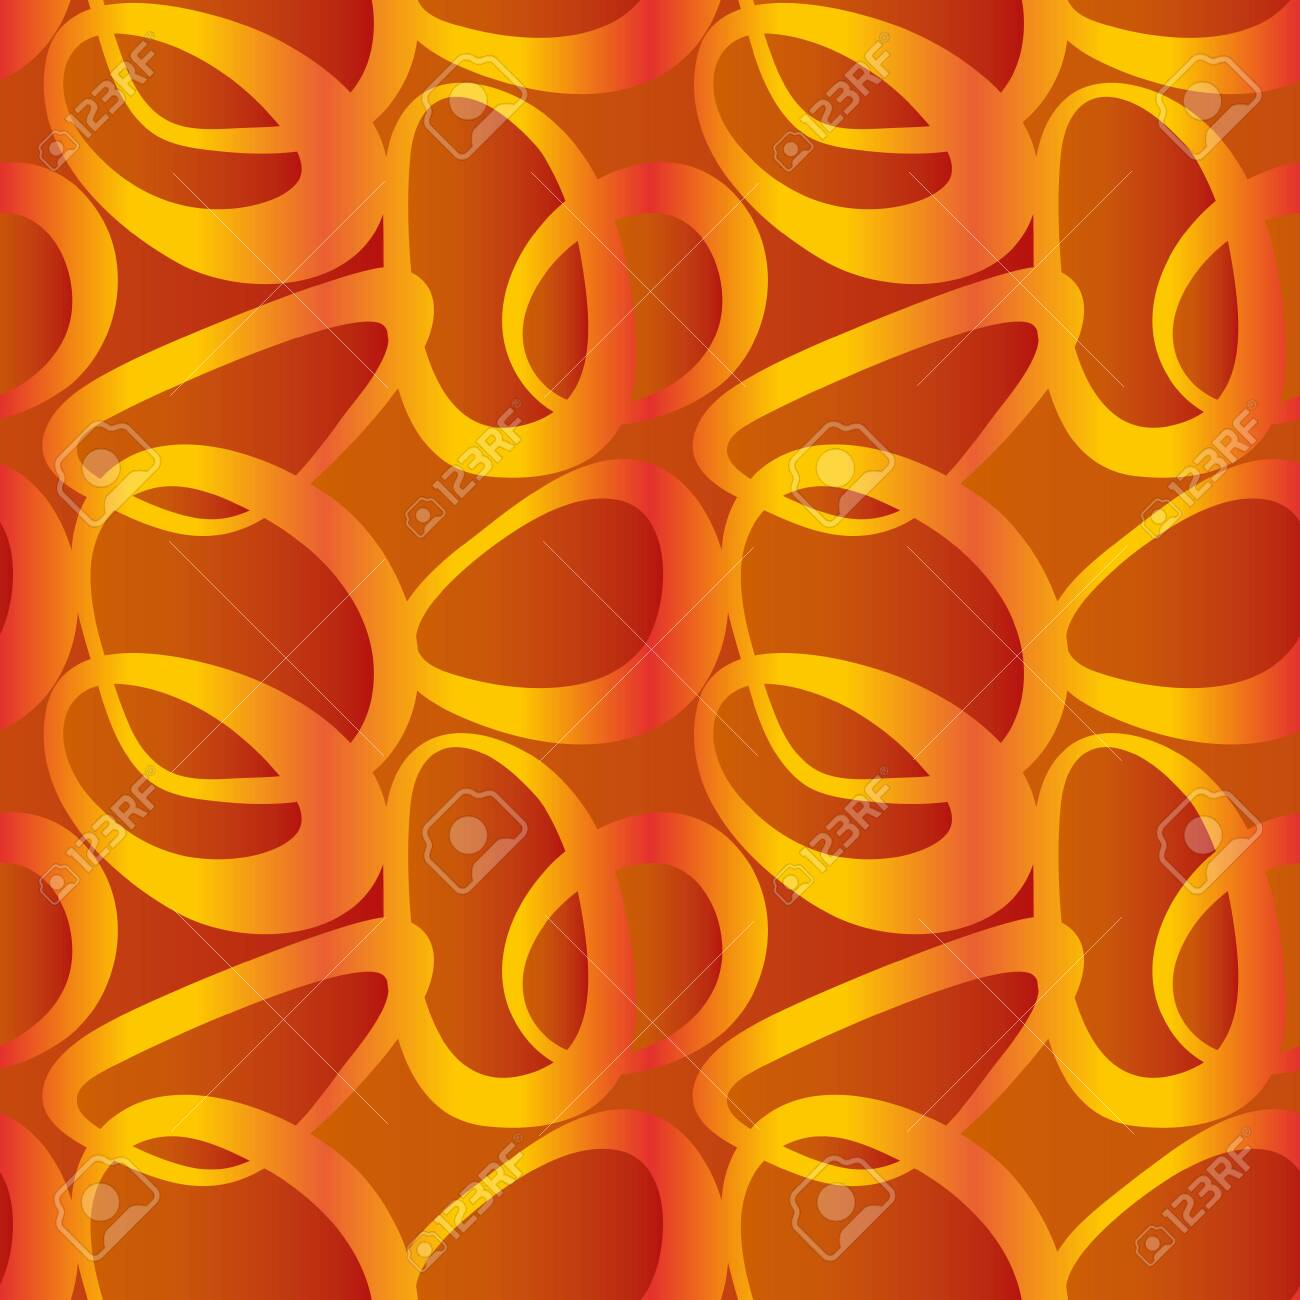 Seamless Abstract Tile Pattern with Golden Yellow Rings on Orange - 137232087